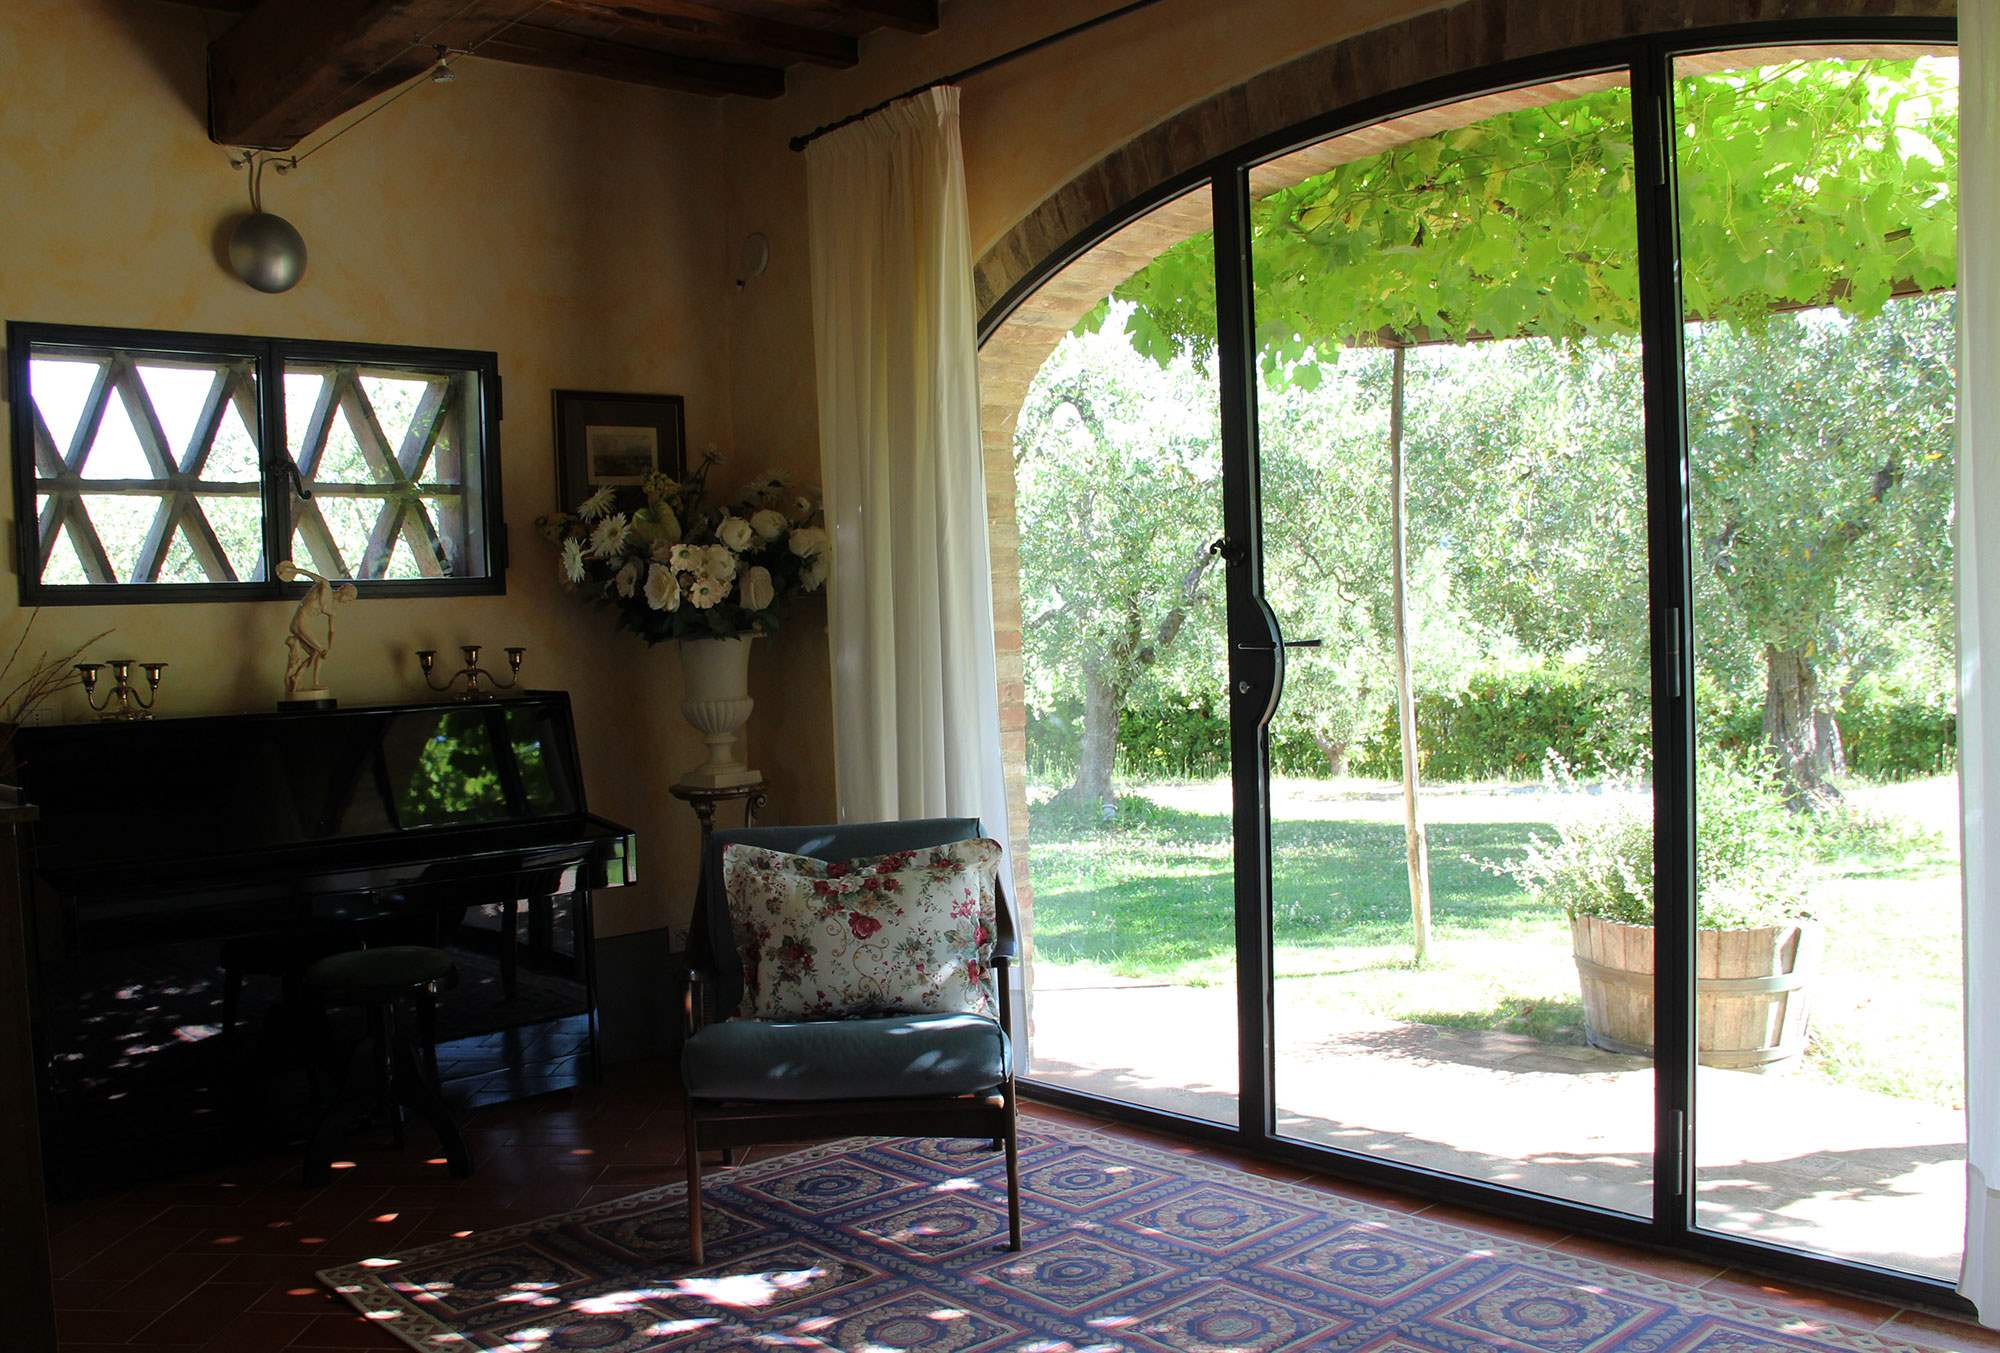 Villa Capanna, 3 bedroom villa in Chianti & Countryside, Tuscany Photo #8